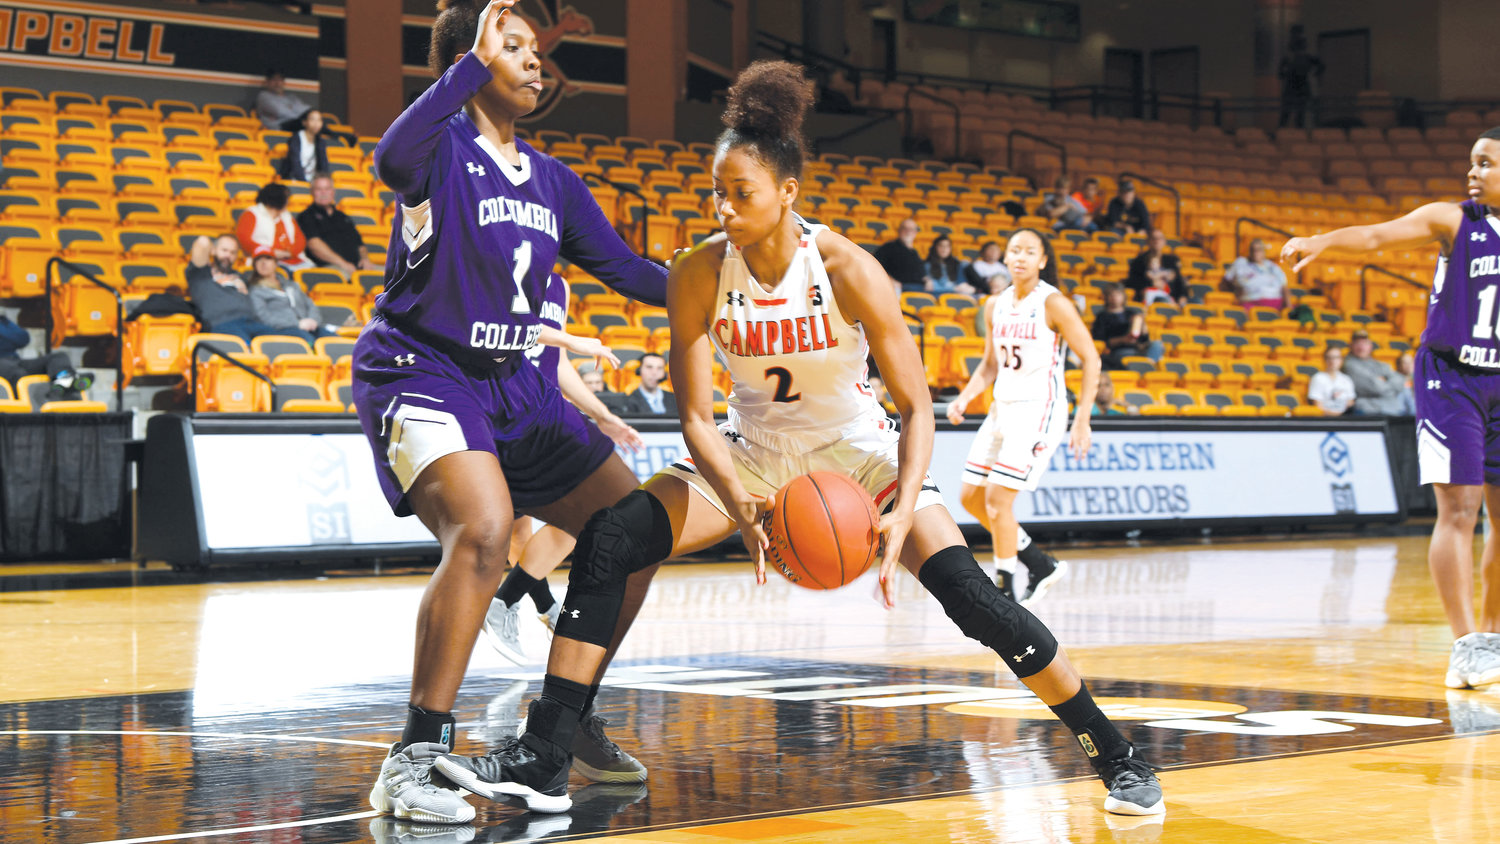 Four Camels reached double-figures in the 47-point win Sunday against Columbia College, including Lauren Carter (No. 2) shown here, who had a career high of 16 points.